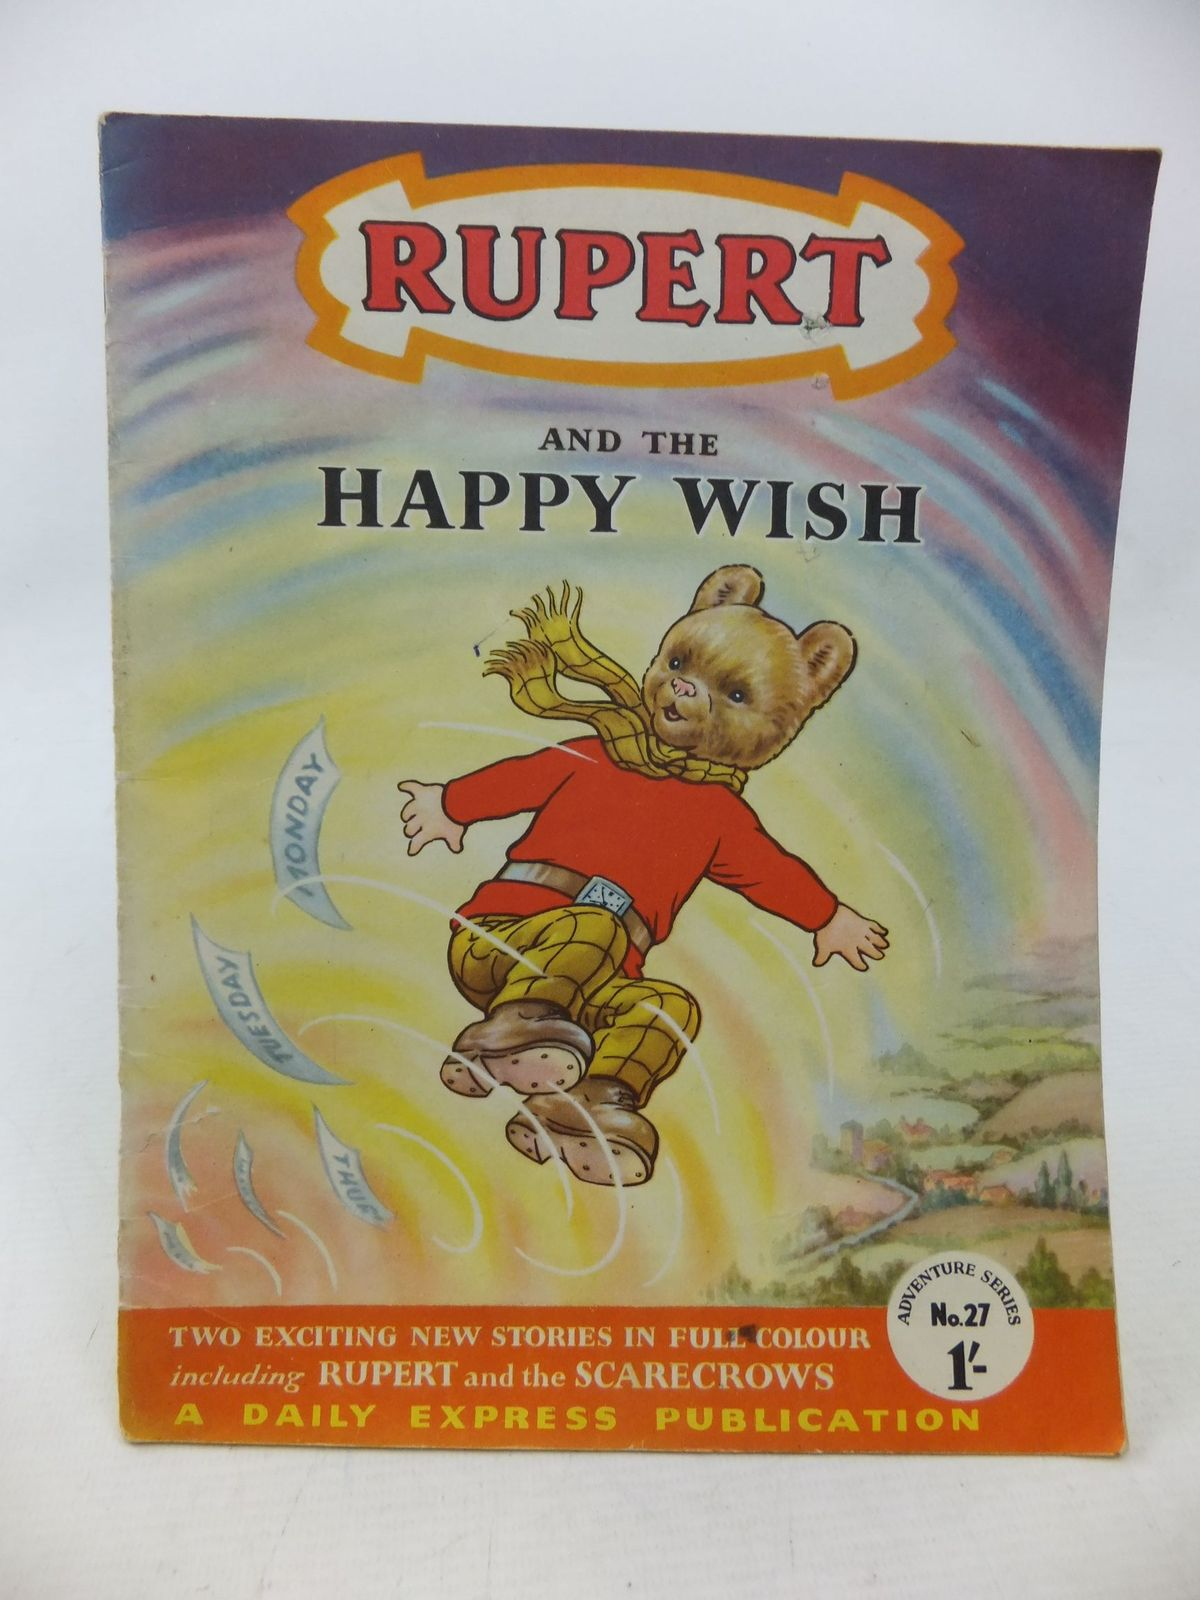 Photo of RUPERT ADVENTURE SERIES No. 27 - RUPERT AND THE HAPPY WISH written by Bestall, Alfred published by Daily Express (STOCK CODE: 1109175)  for sale by Stella & Rose's Books